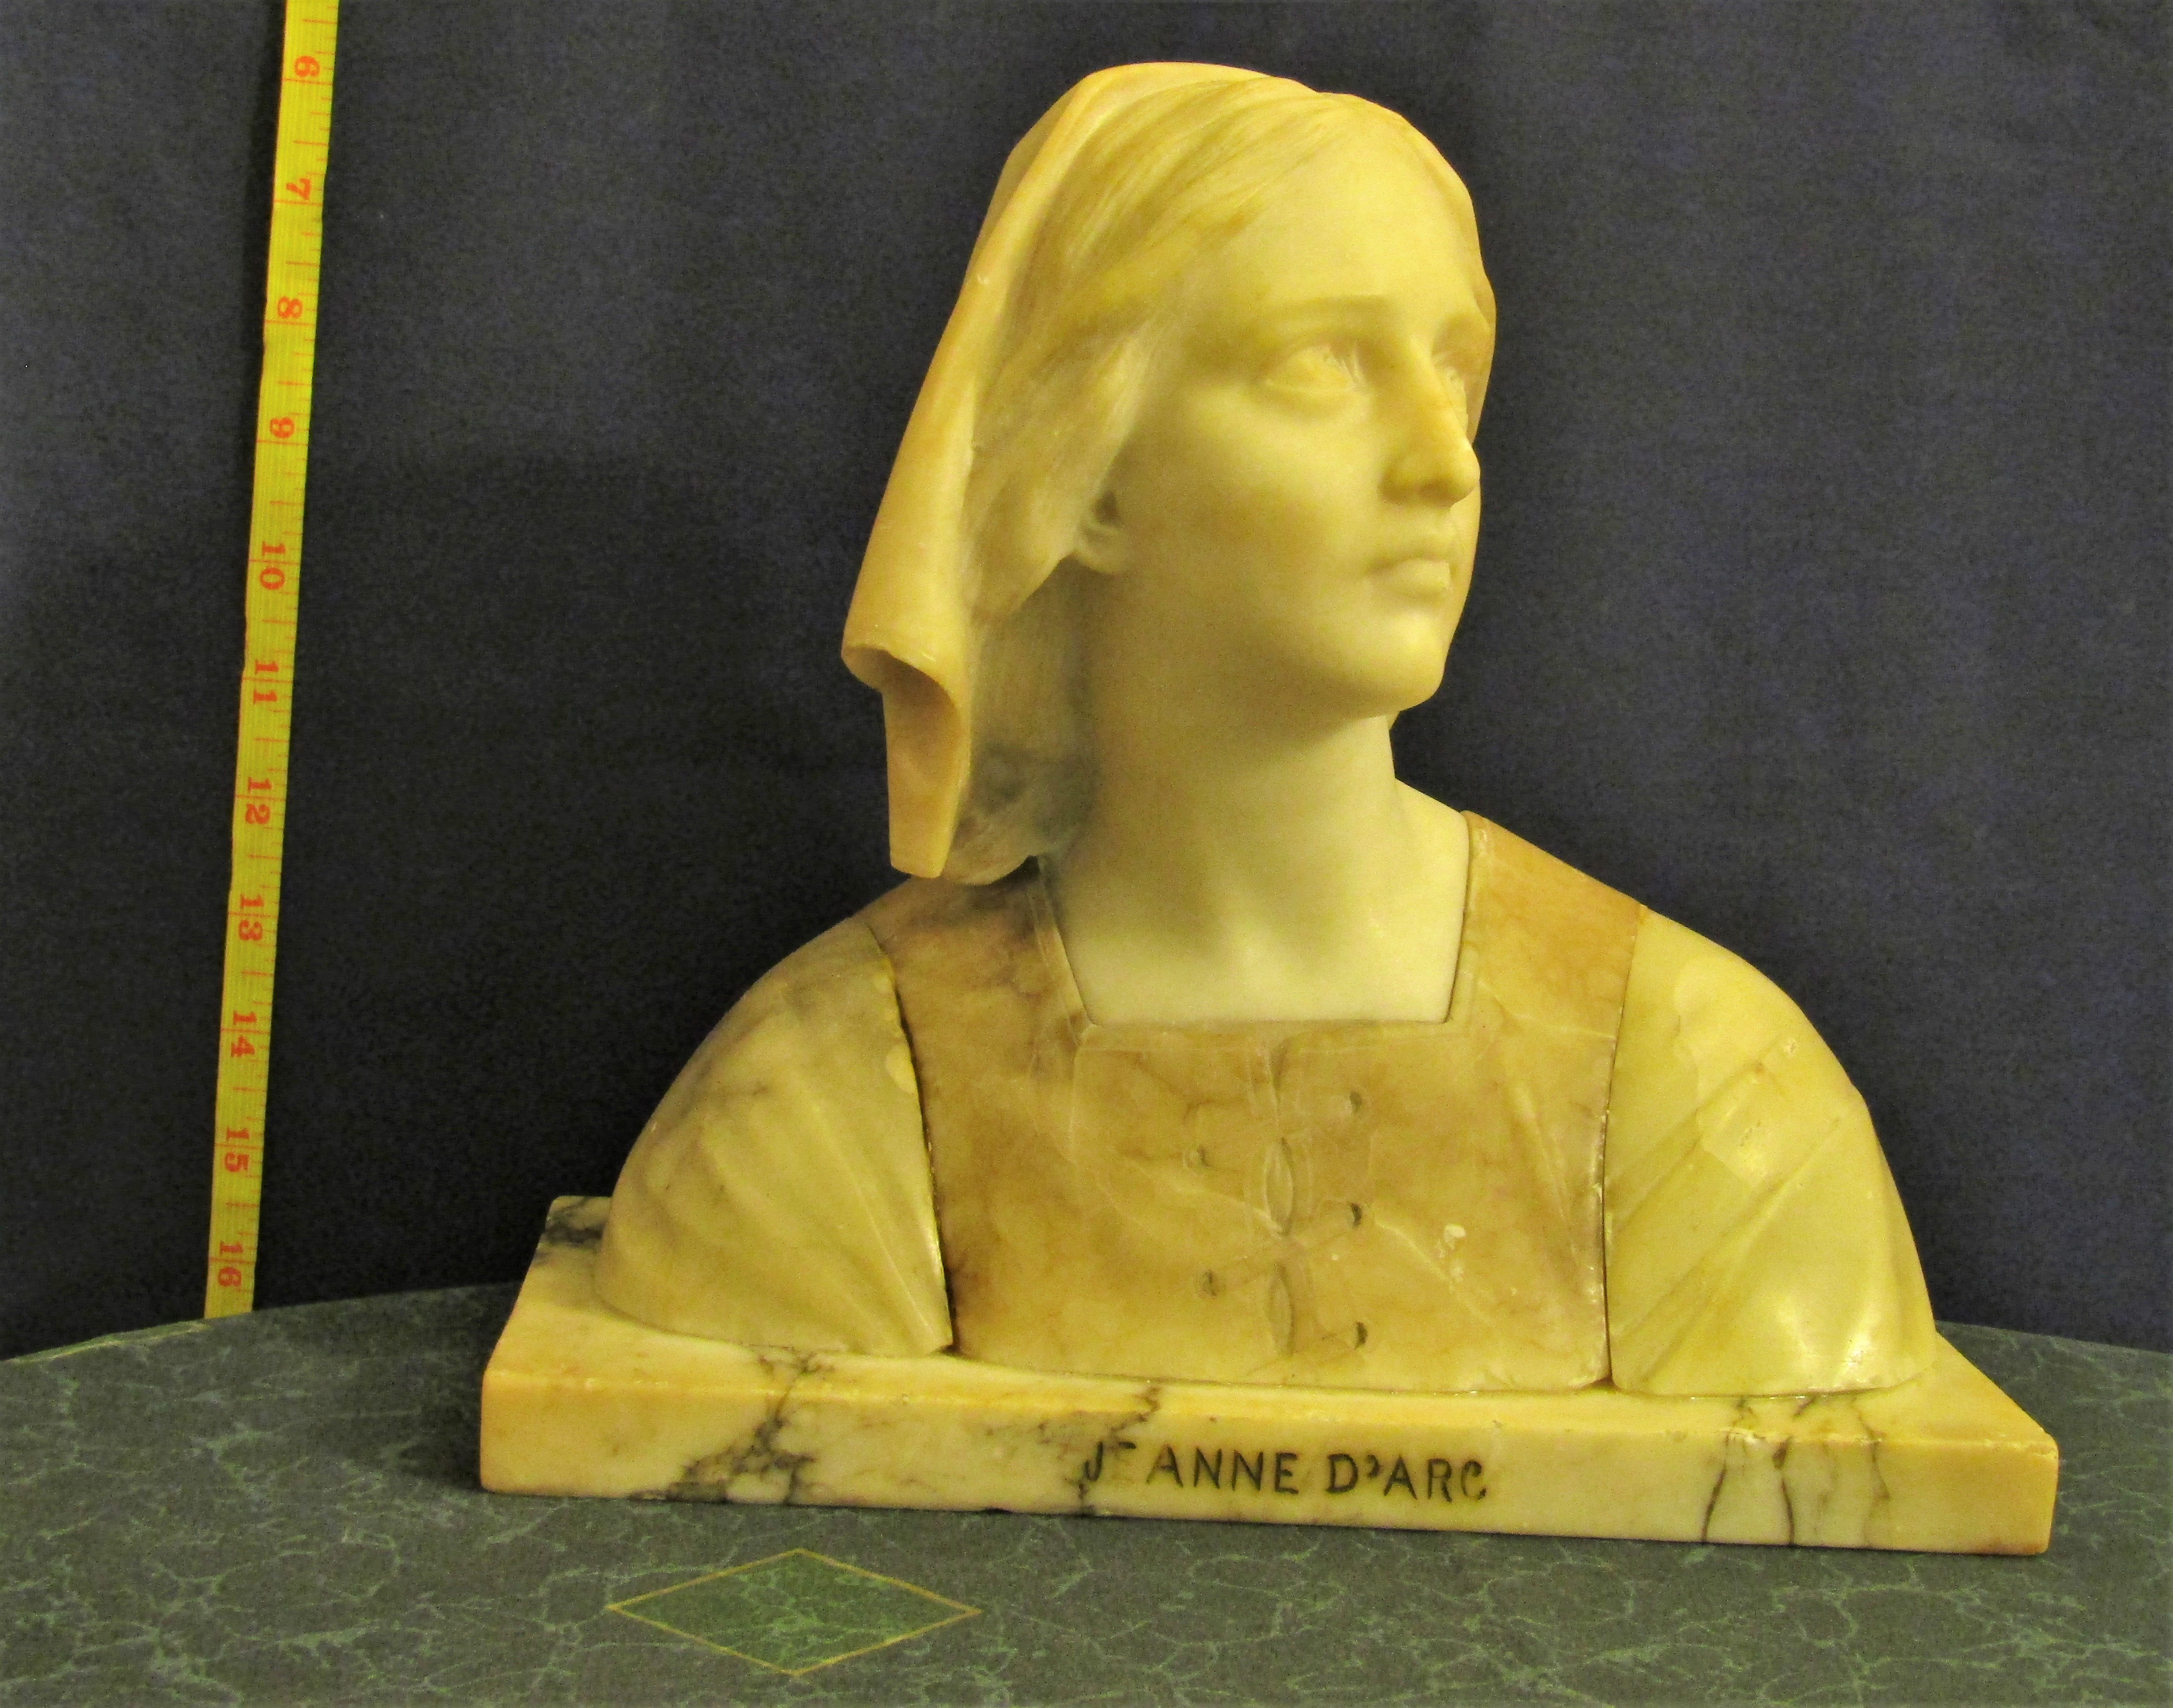 Joan of Arc artwork by Professor Giuseppe Bessi - art listed for sale on Artplode